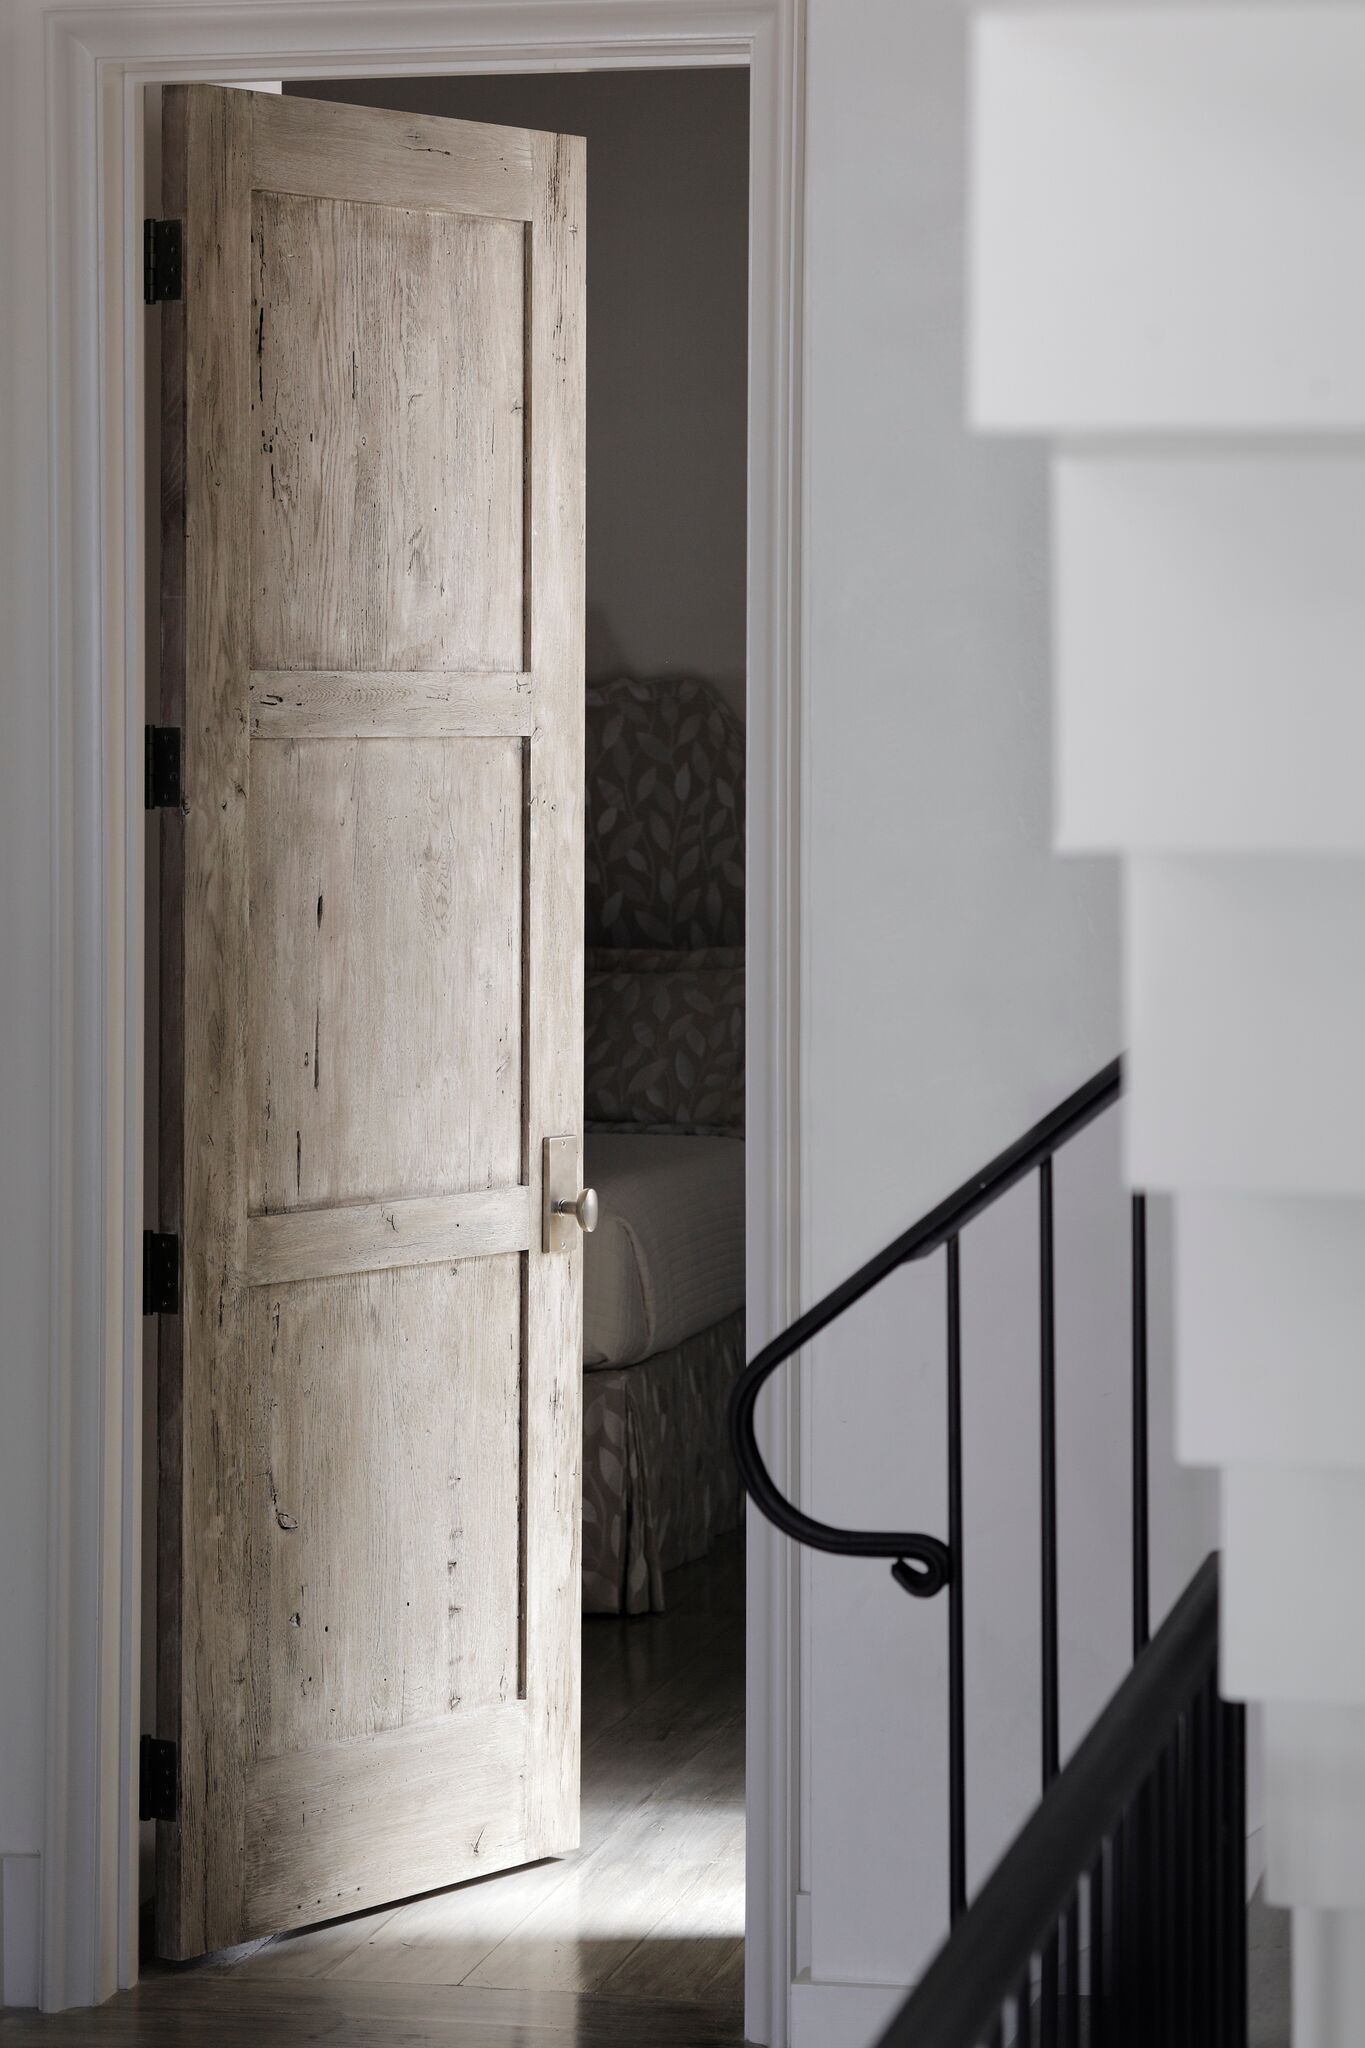 Rustic wood 3-panel door. Stunning interior design and Timeless Architecture Inspiration: Jeffrey Dungan. Photo: William Abranowicz. #classicdesign #traditional #architecture #jeffreydungan #sophisticateddesign #architect